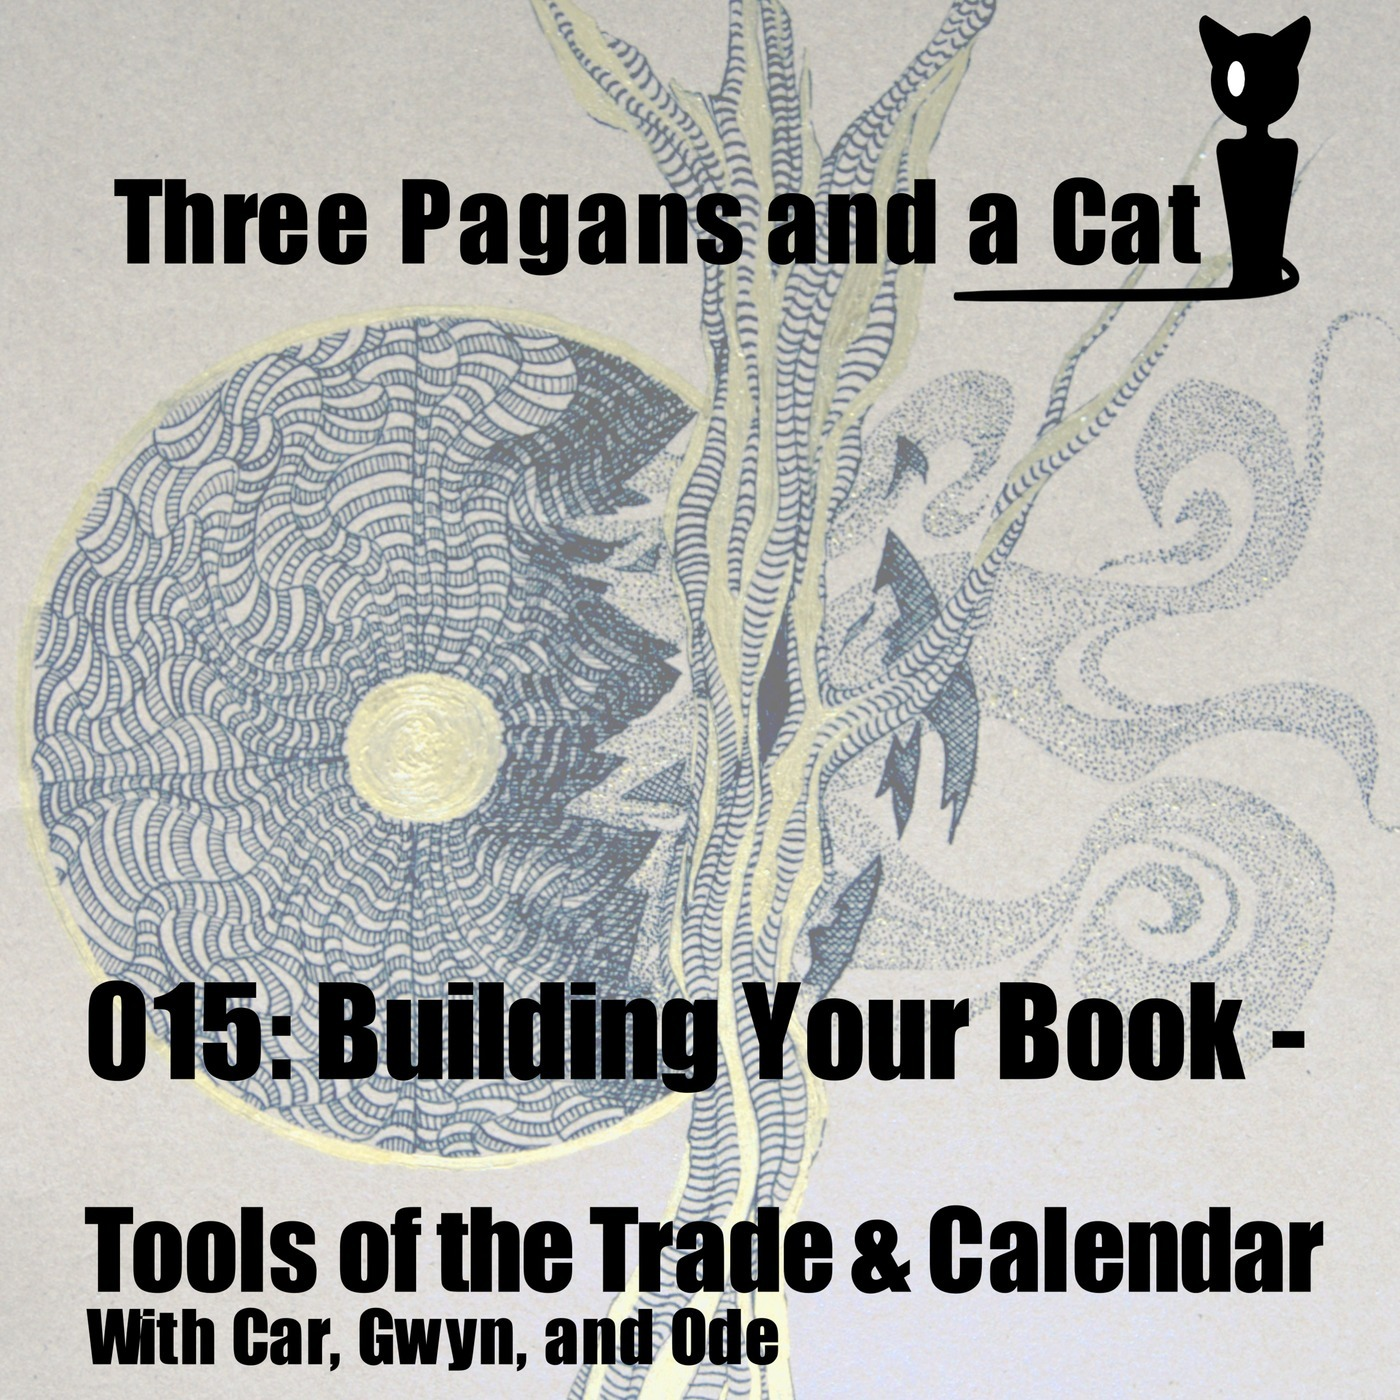 Episode Calendar.3 Pagans And A Cat Episode 015 Building Your Book Tools Of The